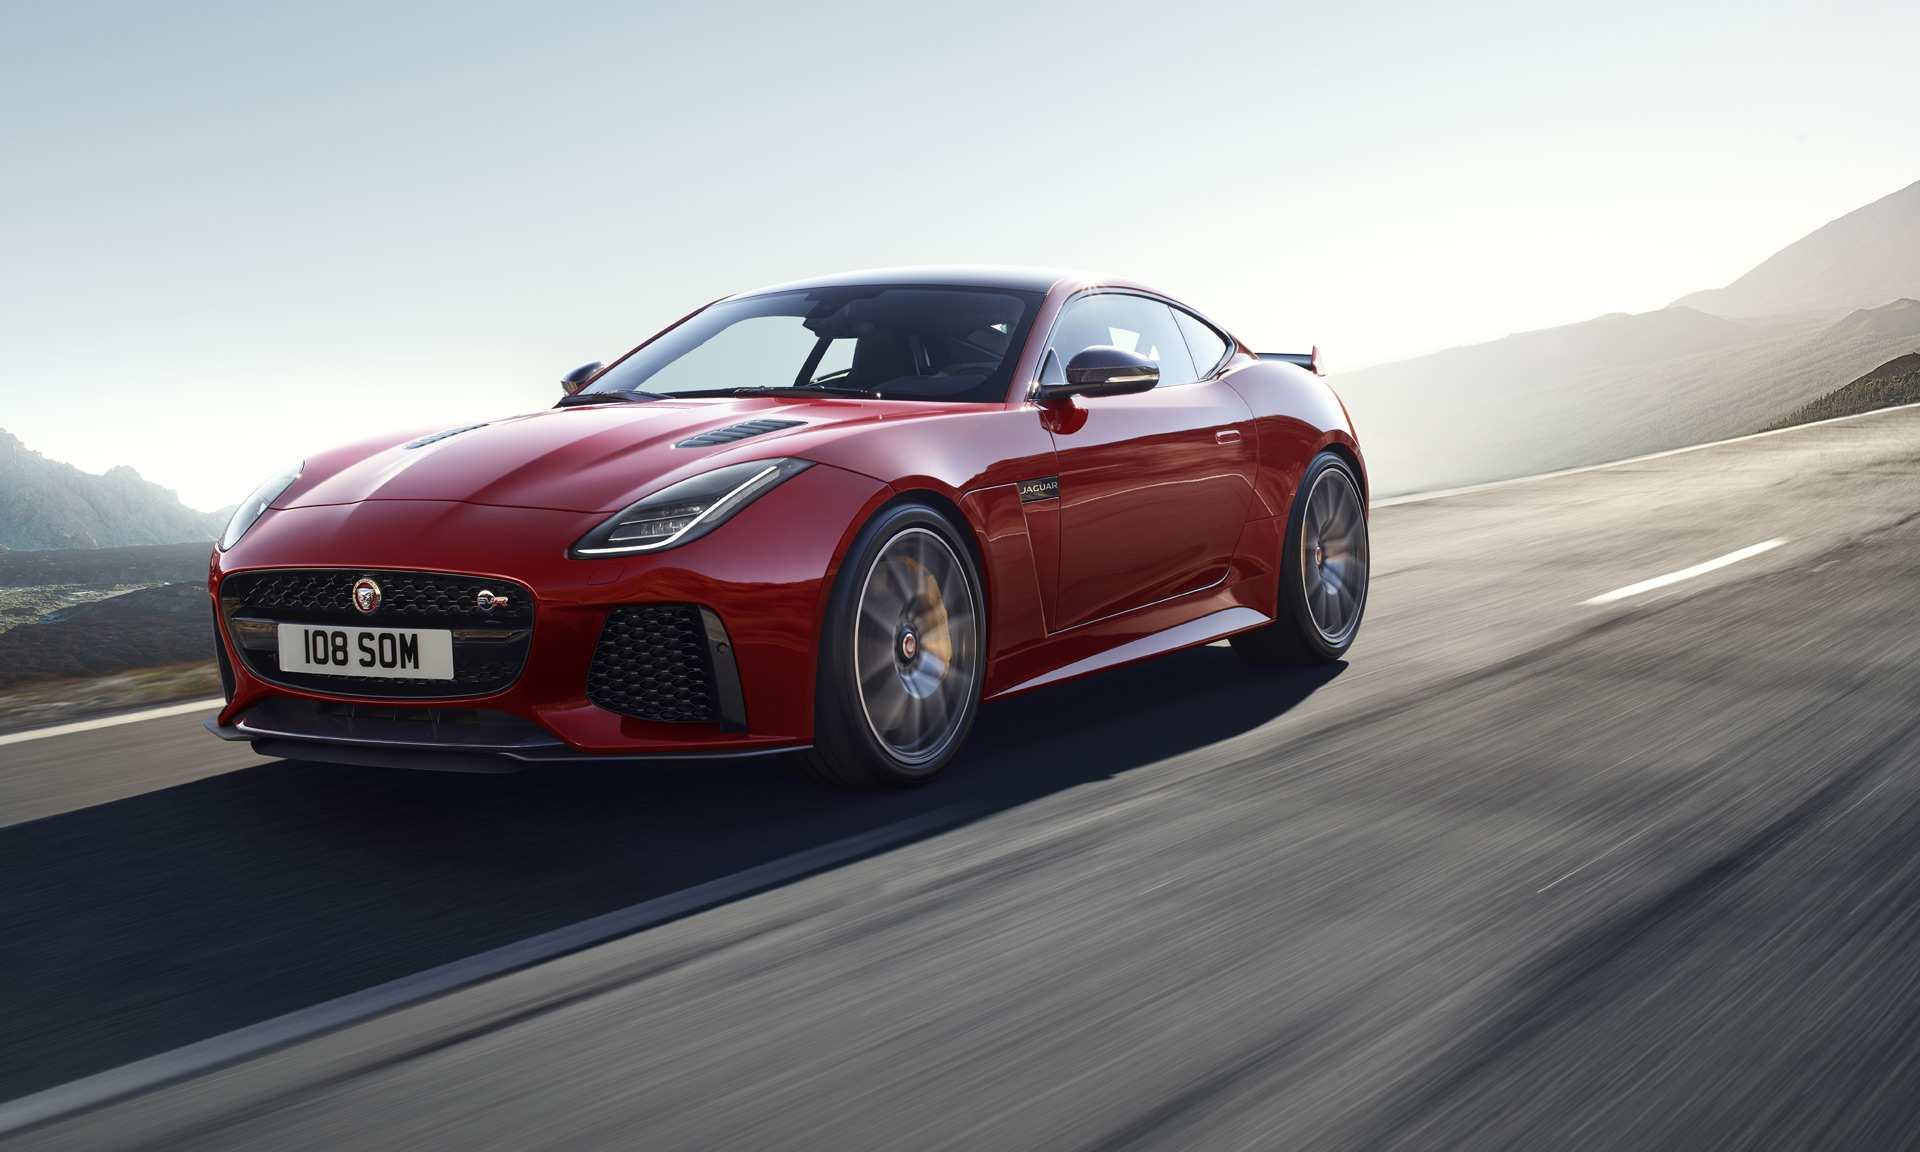 18 New The Jaguar F Type Facelift 2019 New Engine Overview by The Jaguar F Type Facelift 2019 New Engine